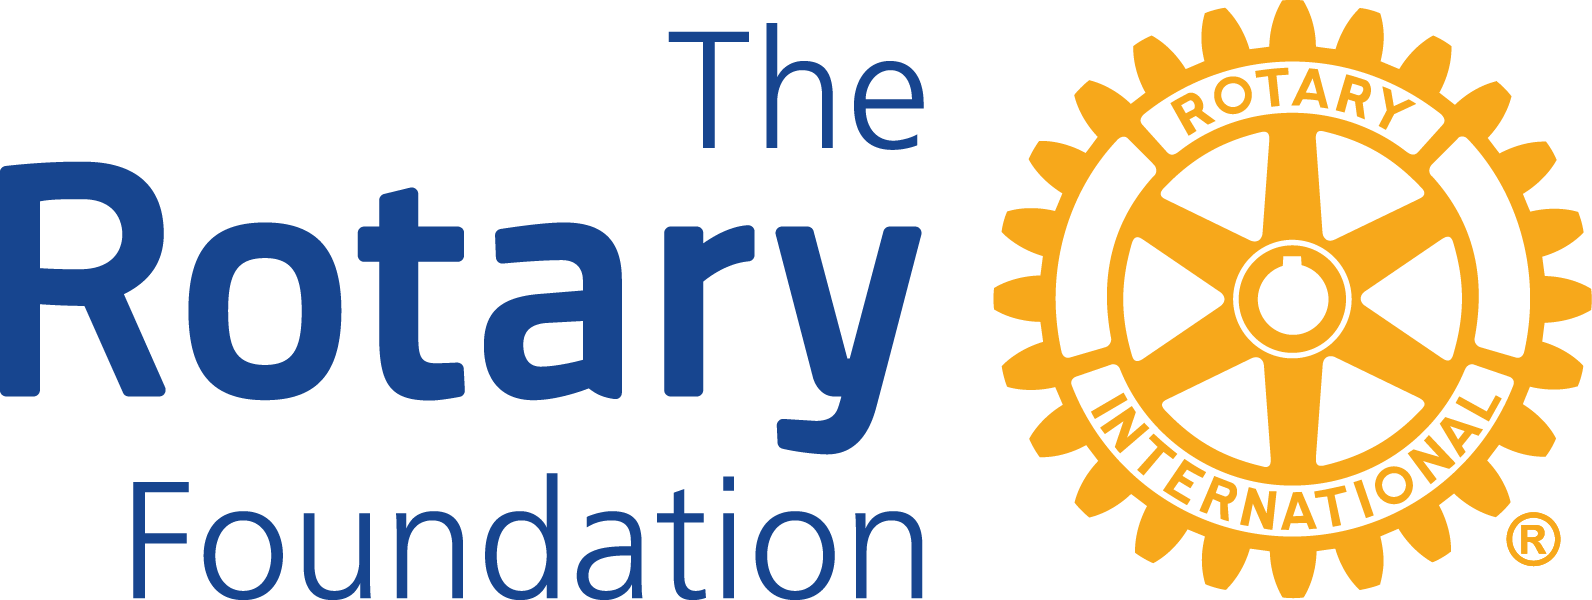 The Rotary Foundation.png